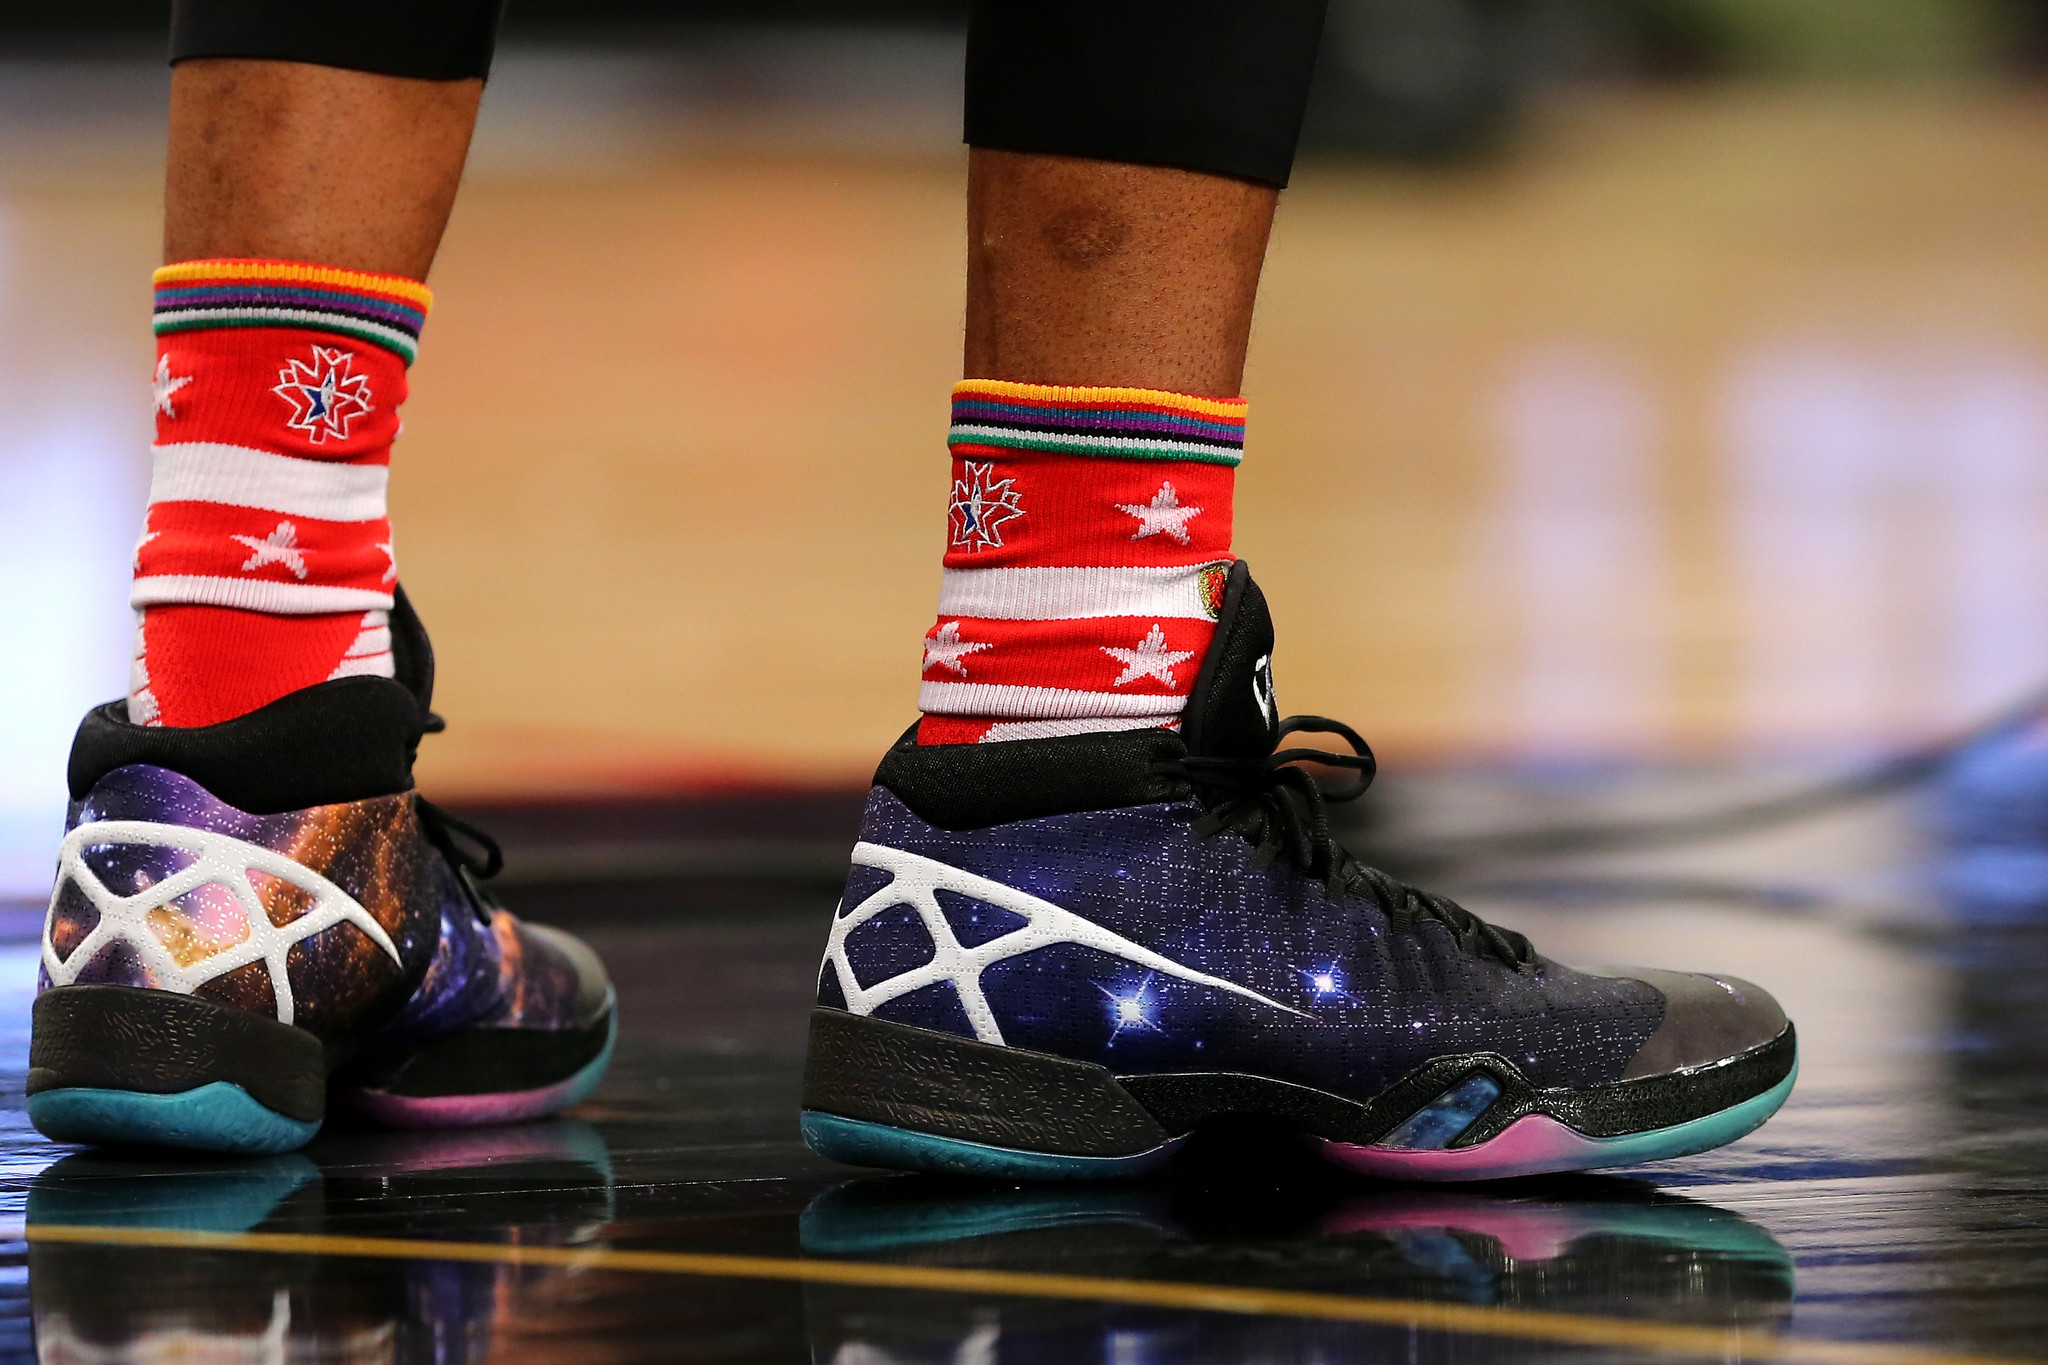 At NBA All-Star weekend, it's all about specially designed shoes